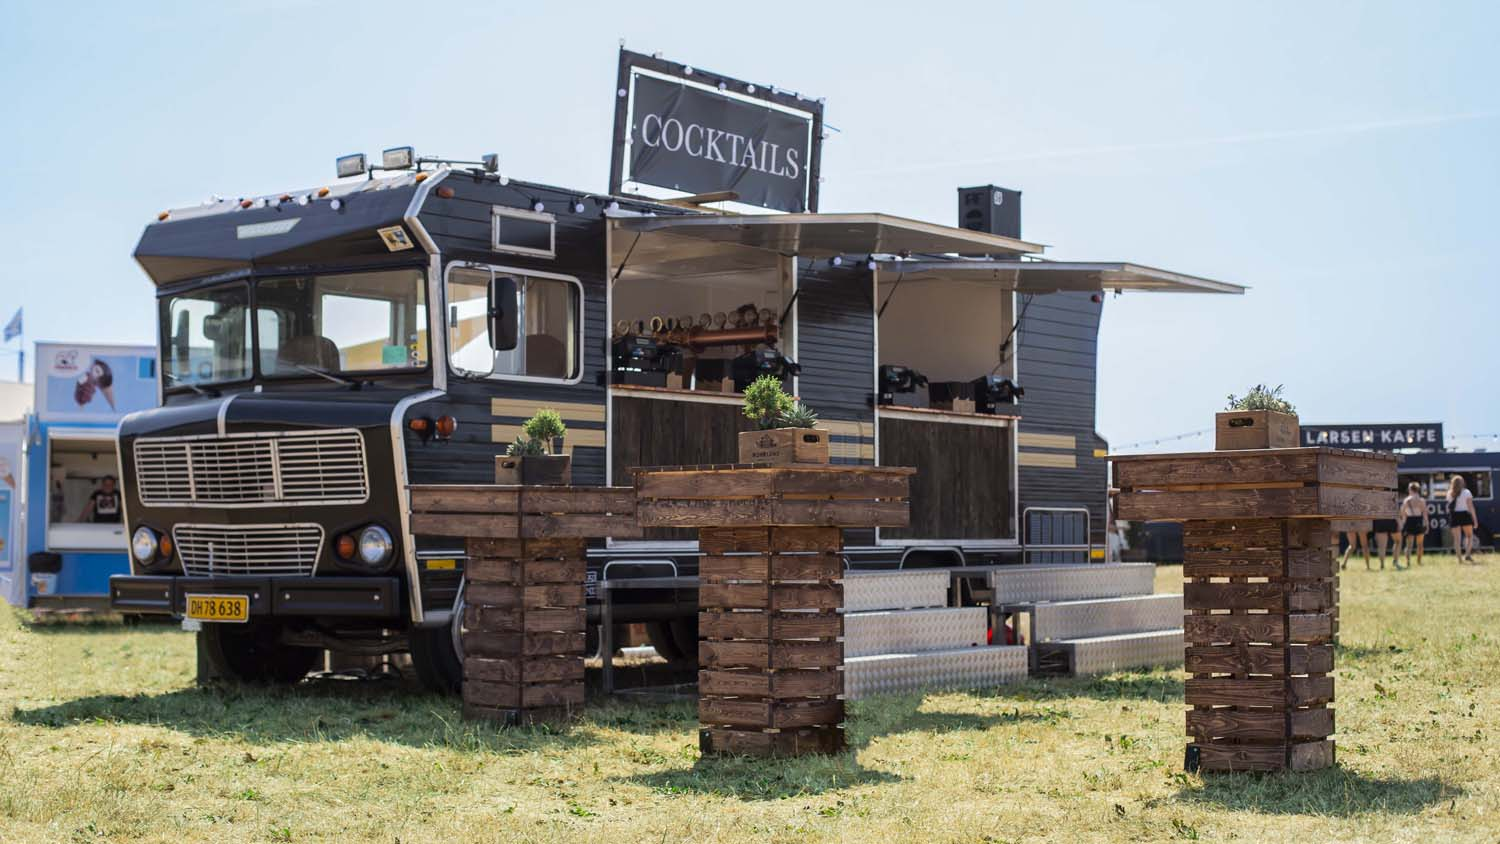 Nohrlund Cocktailtruck